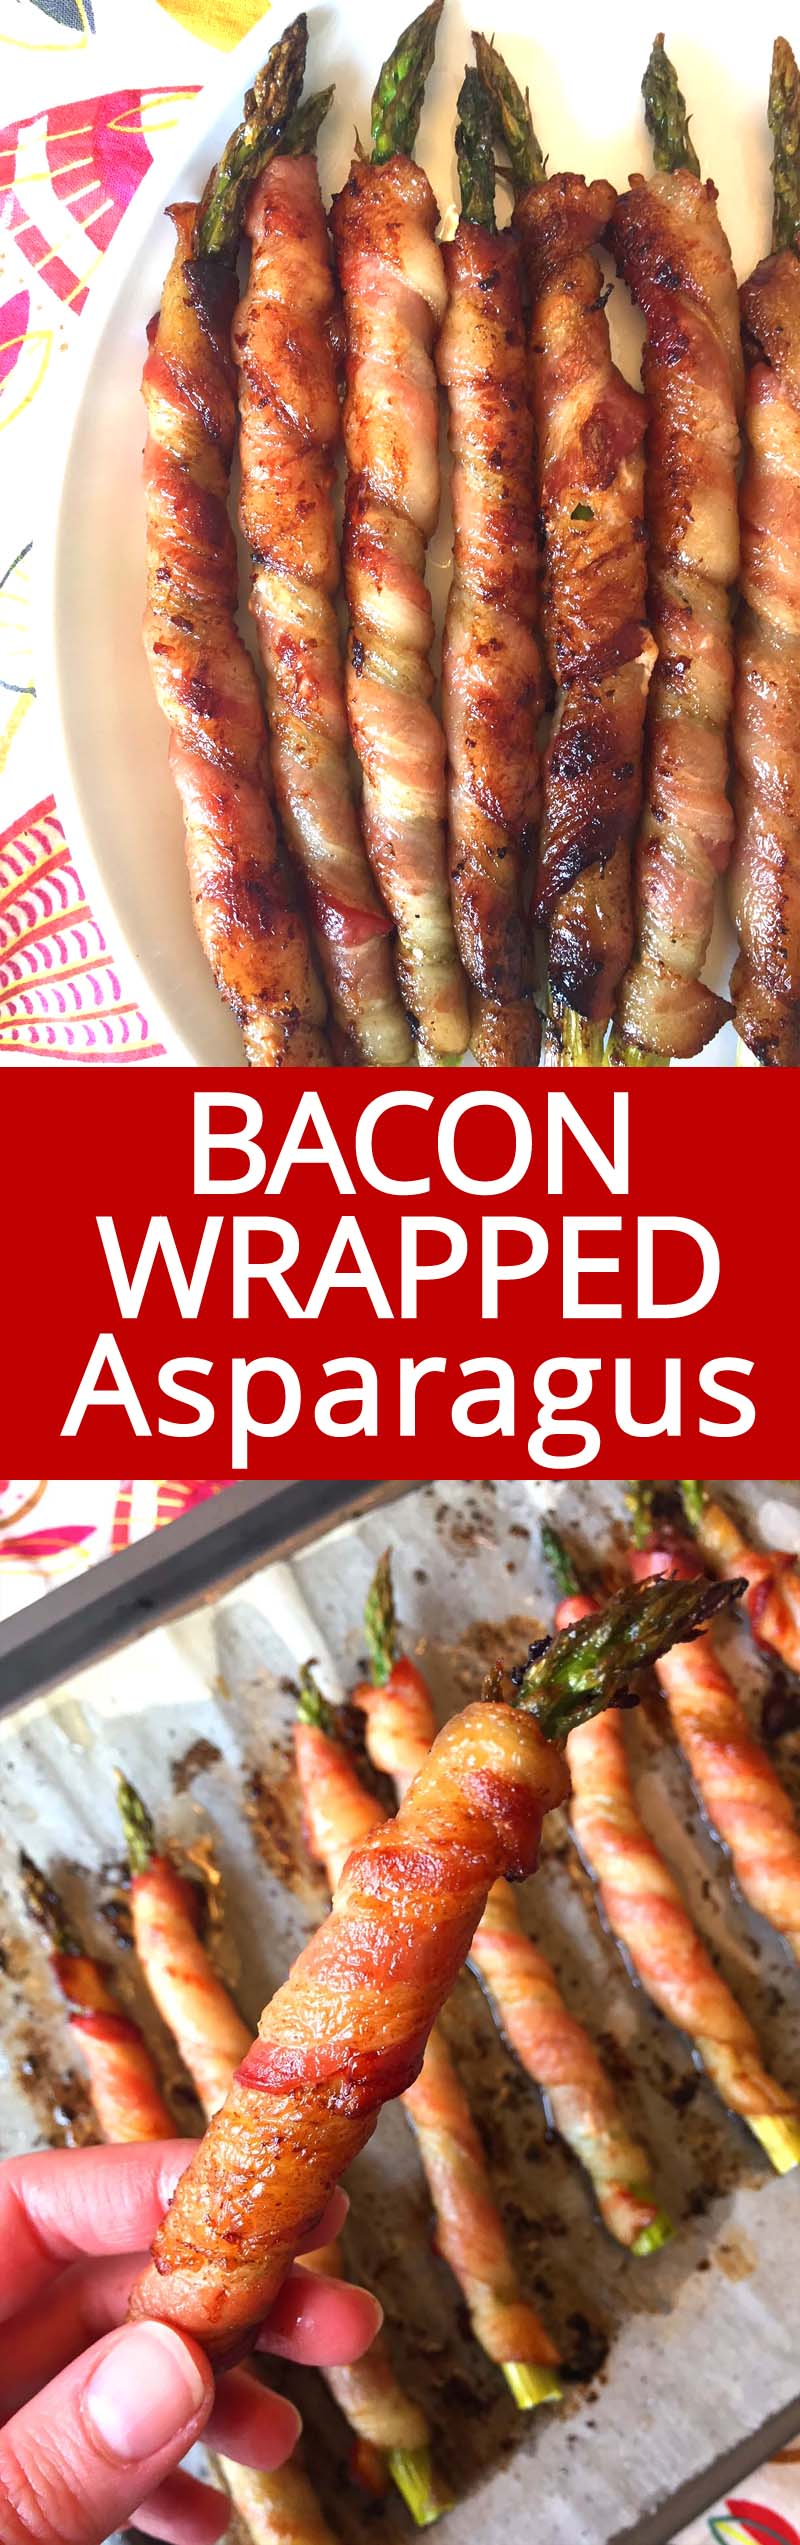 This bacon wrapped asparagus is amazing! This is my favorite lowcarb keto appetizer!  So yummy and crispy! My mouth is watering!